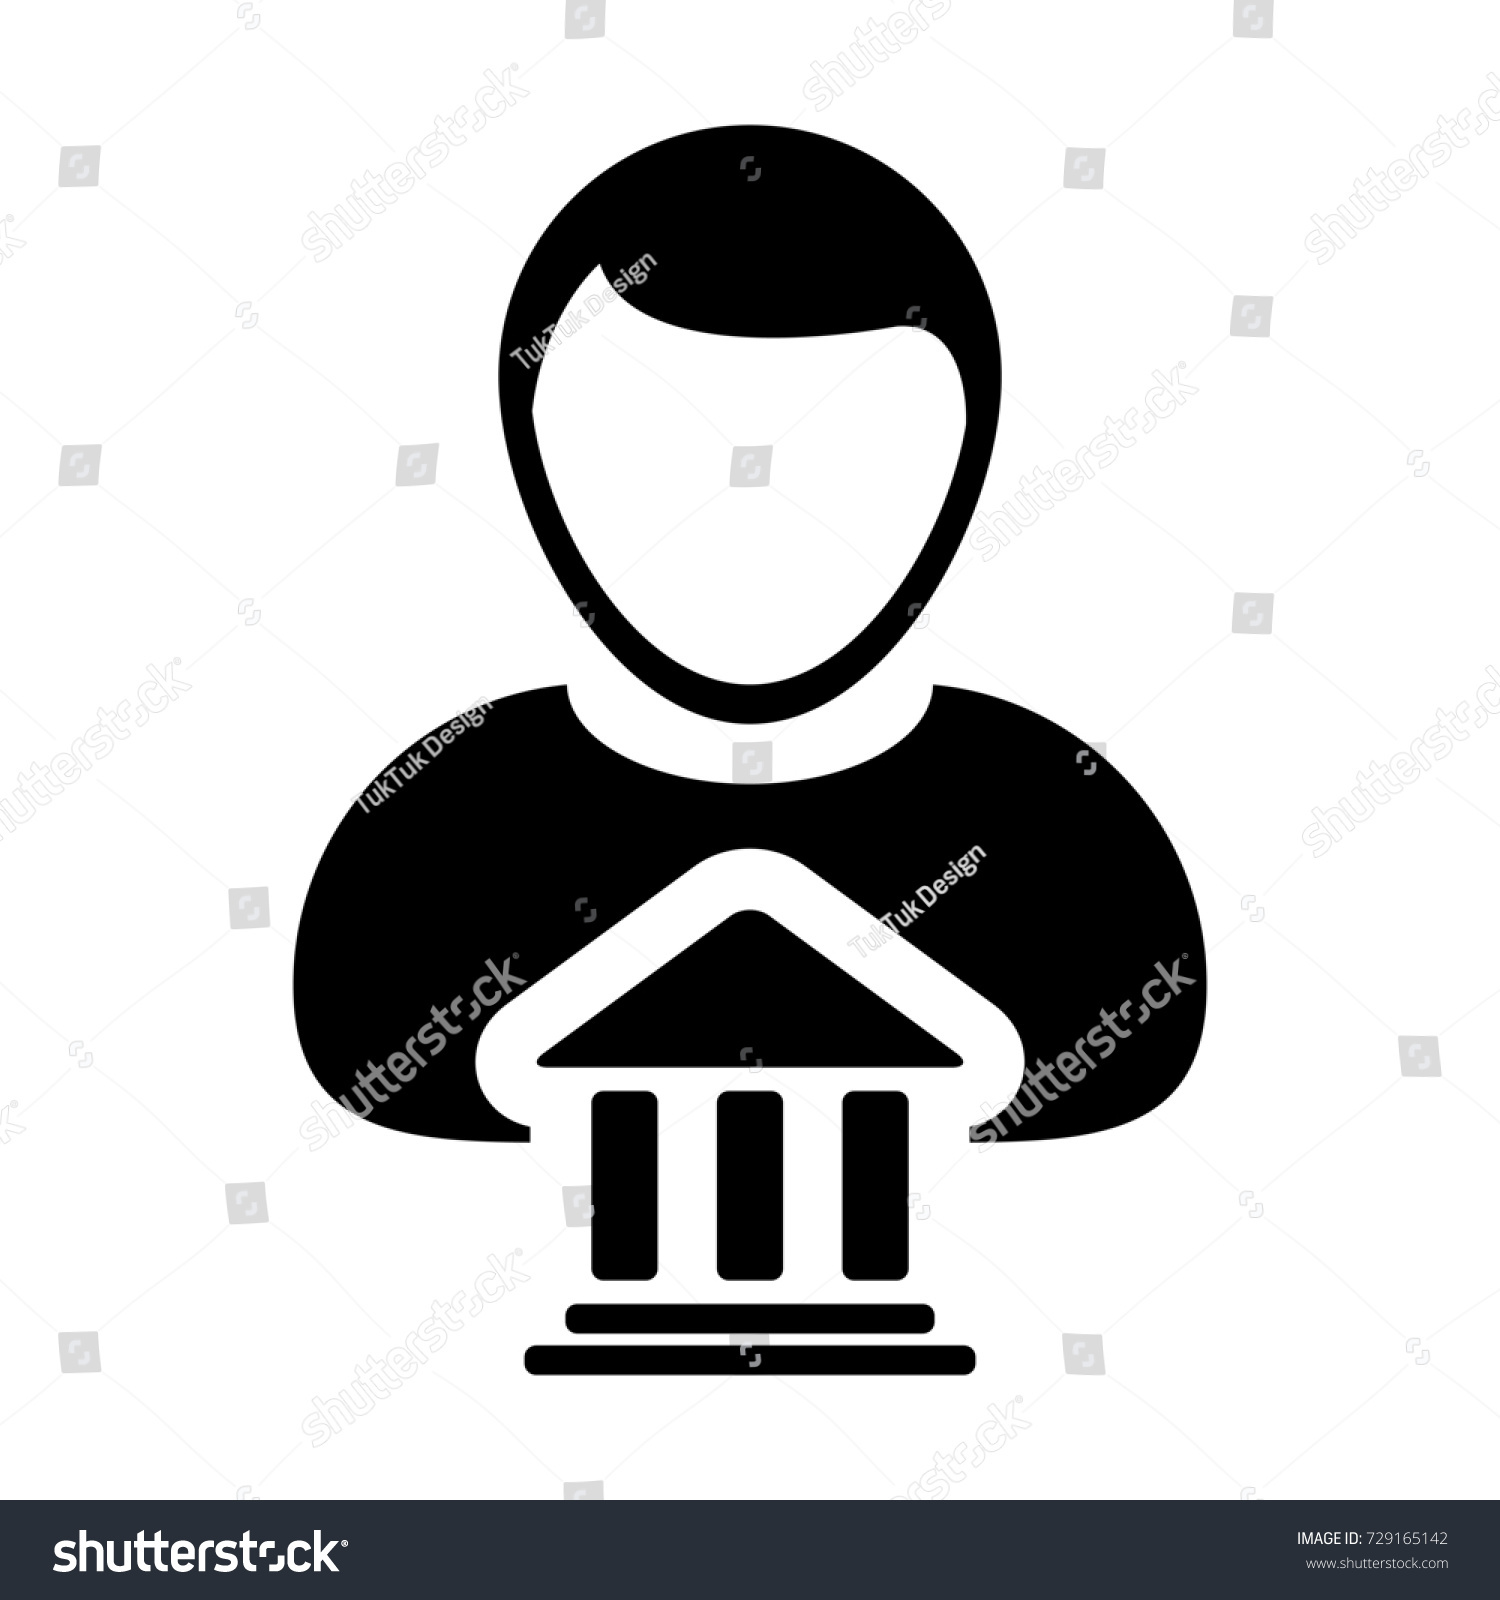 Bank icon vector person profile male stock vector 729165142 bank icon vector with person profile male avatar symbol for banking and finance in glyph pictogram biocorpaavc Gallery